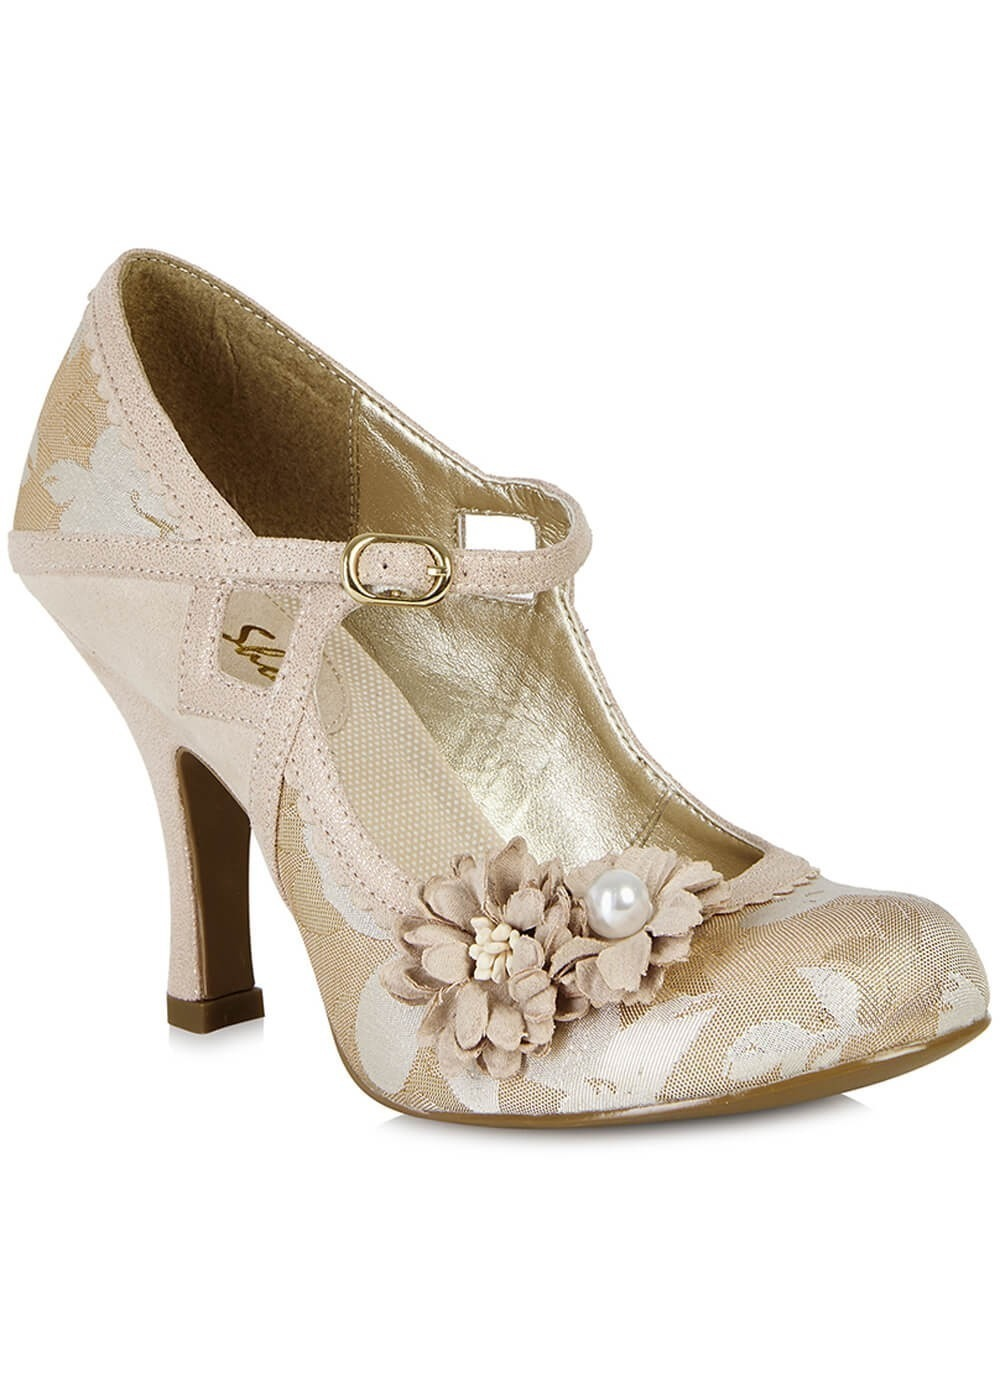 25% korting de hele Ruby Shoo en Joe Browns Couture Collectie